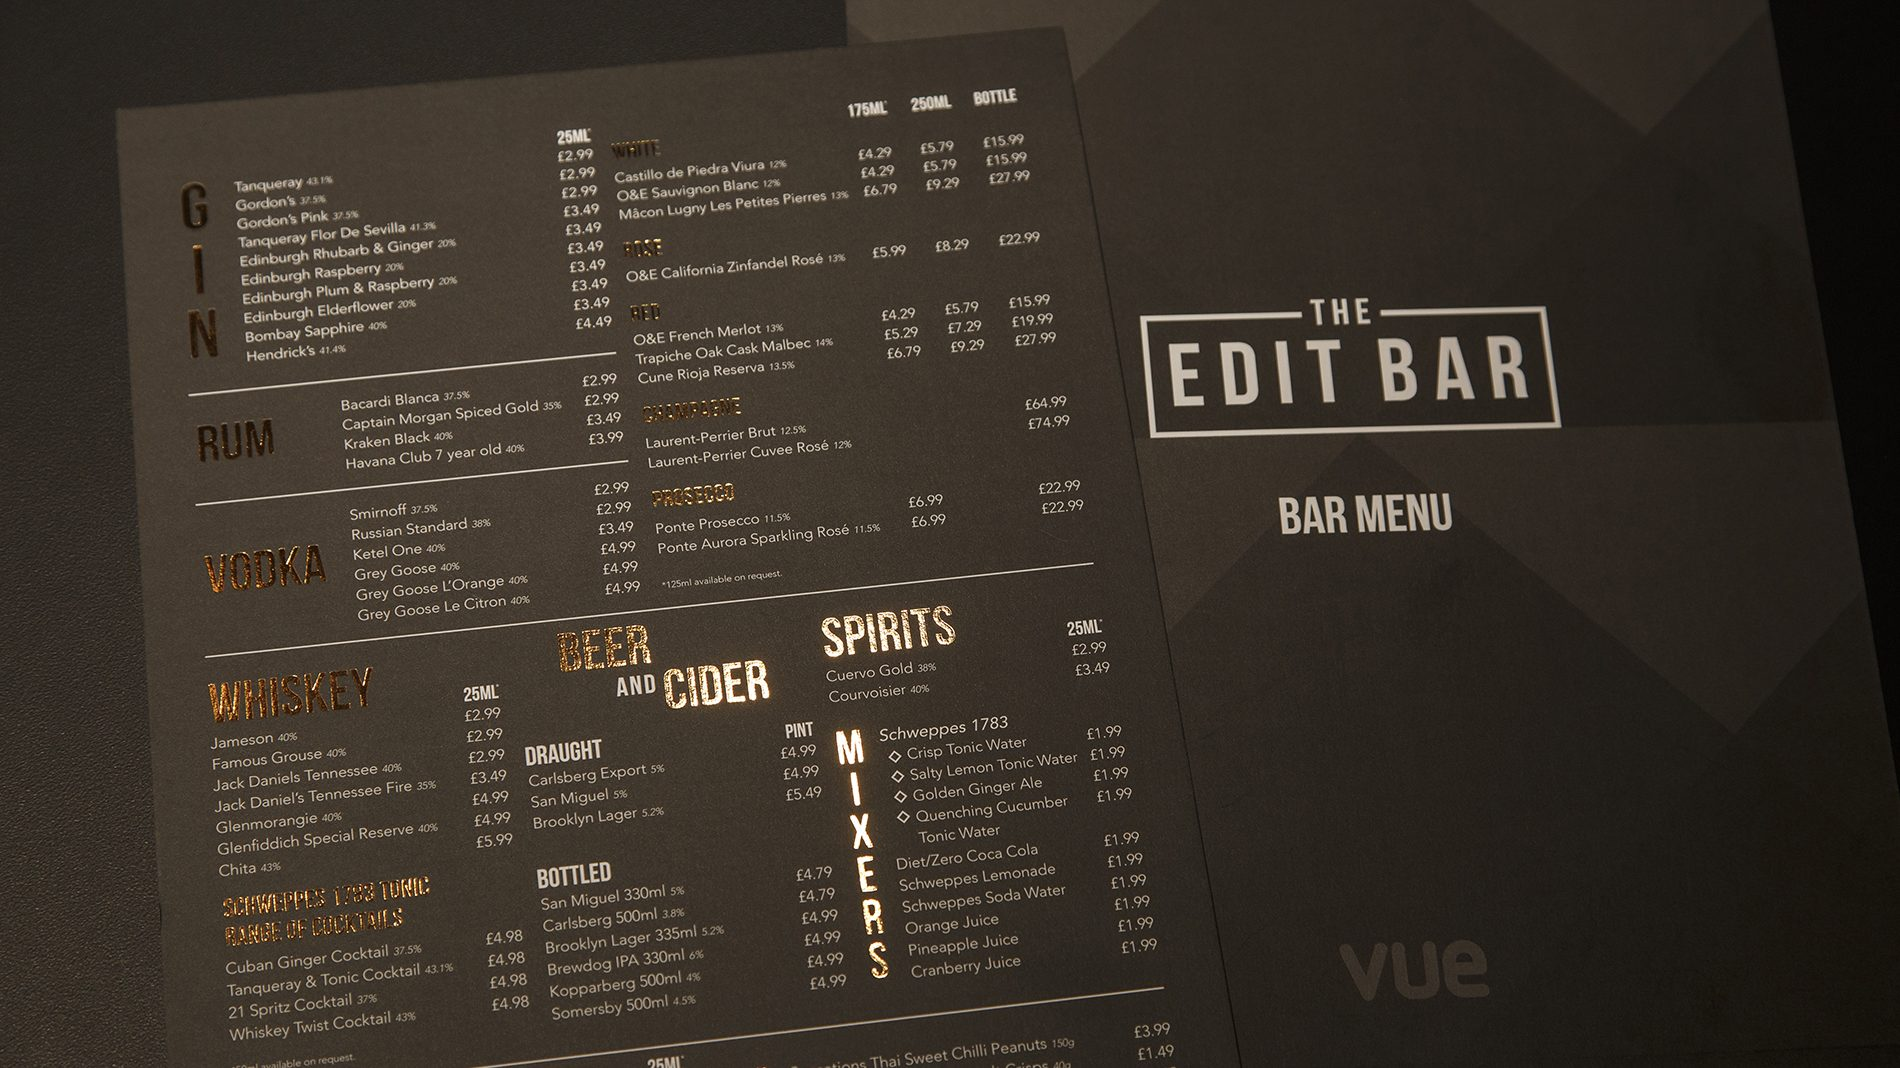 The Edit Bar drinks and snack menu at Vue